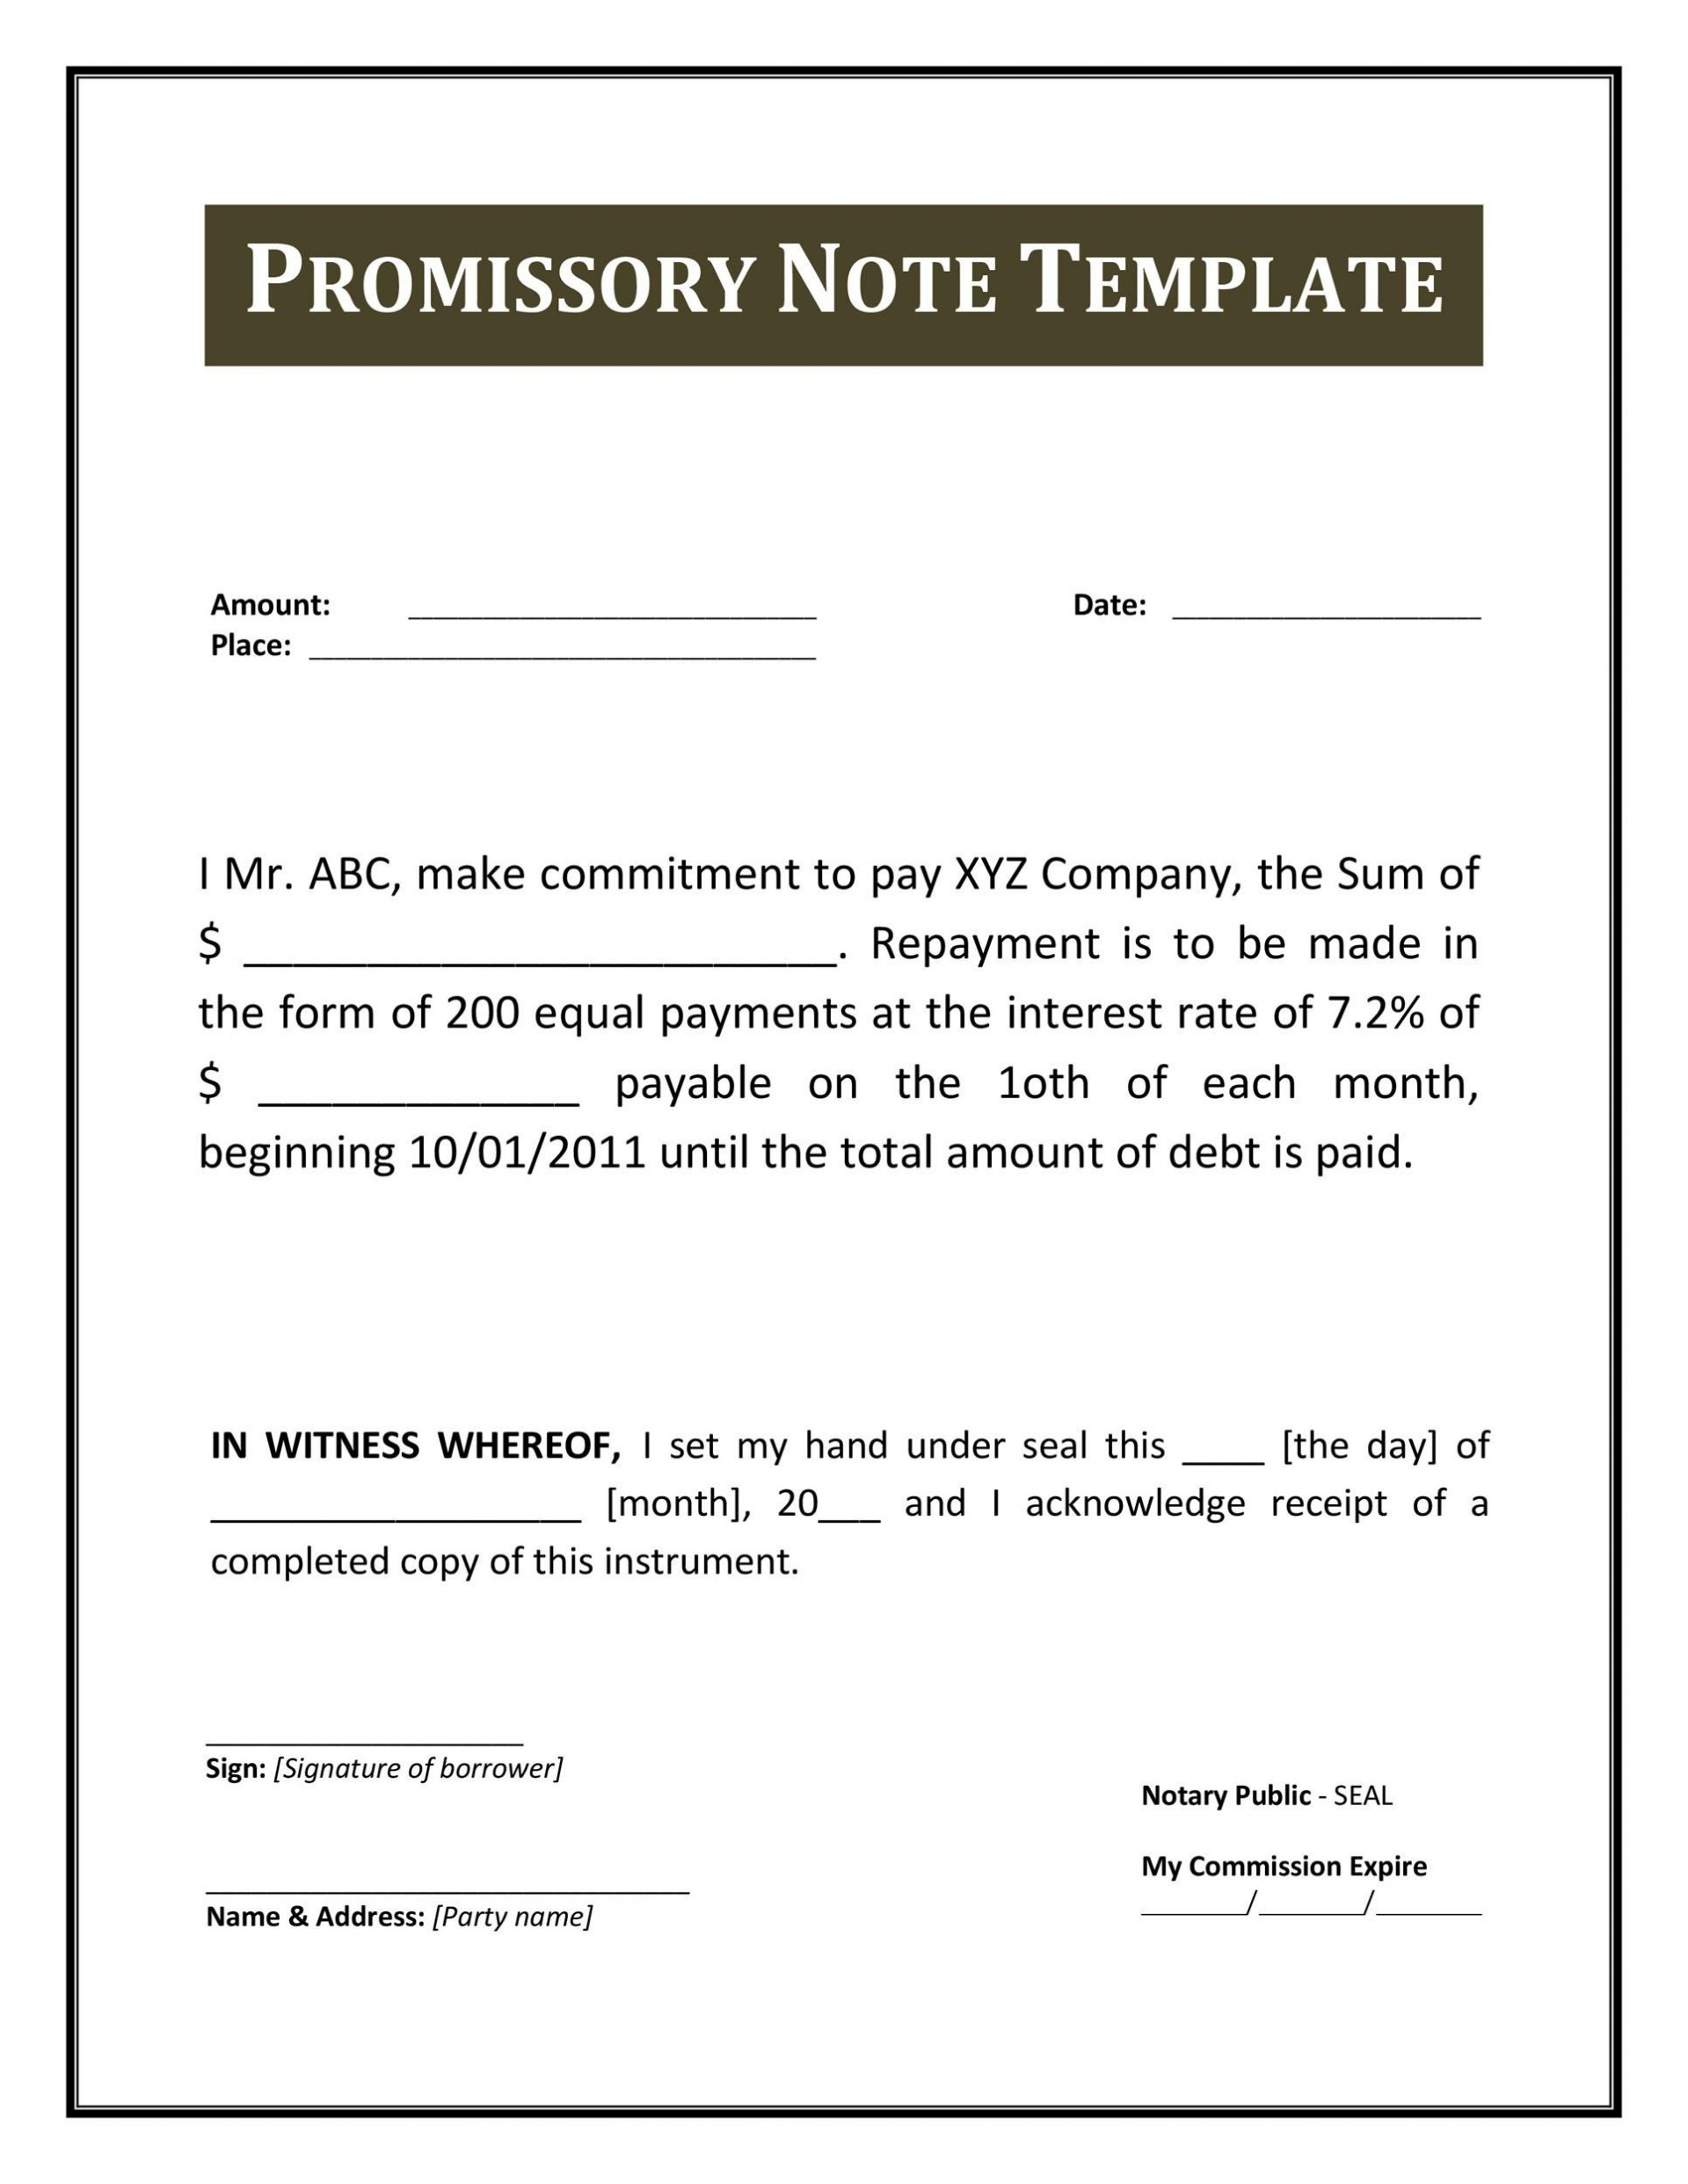 005 Marvelou Loan Promissory Note Template Highest Quality  Ppp Form Personal Format Student1920